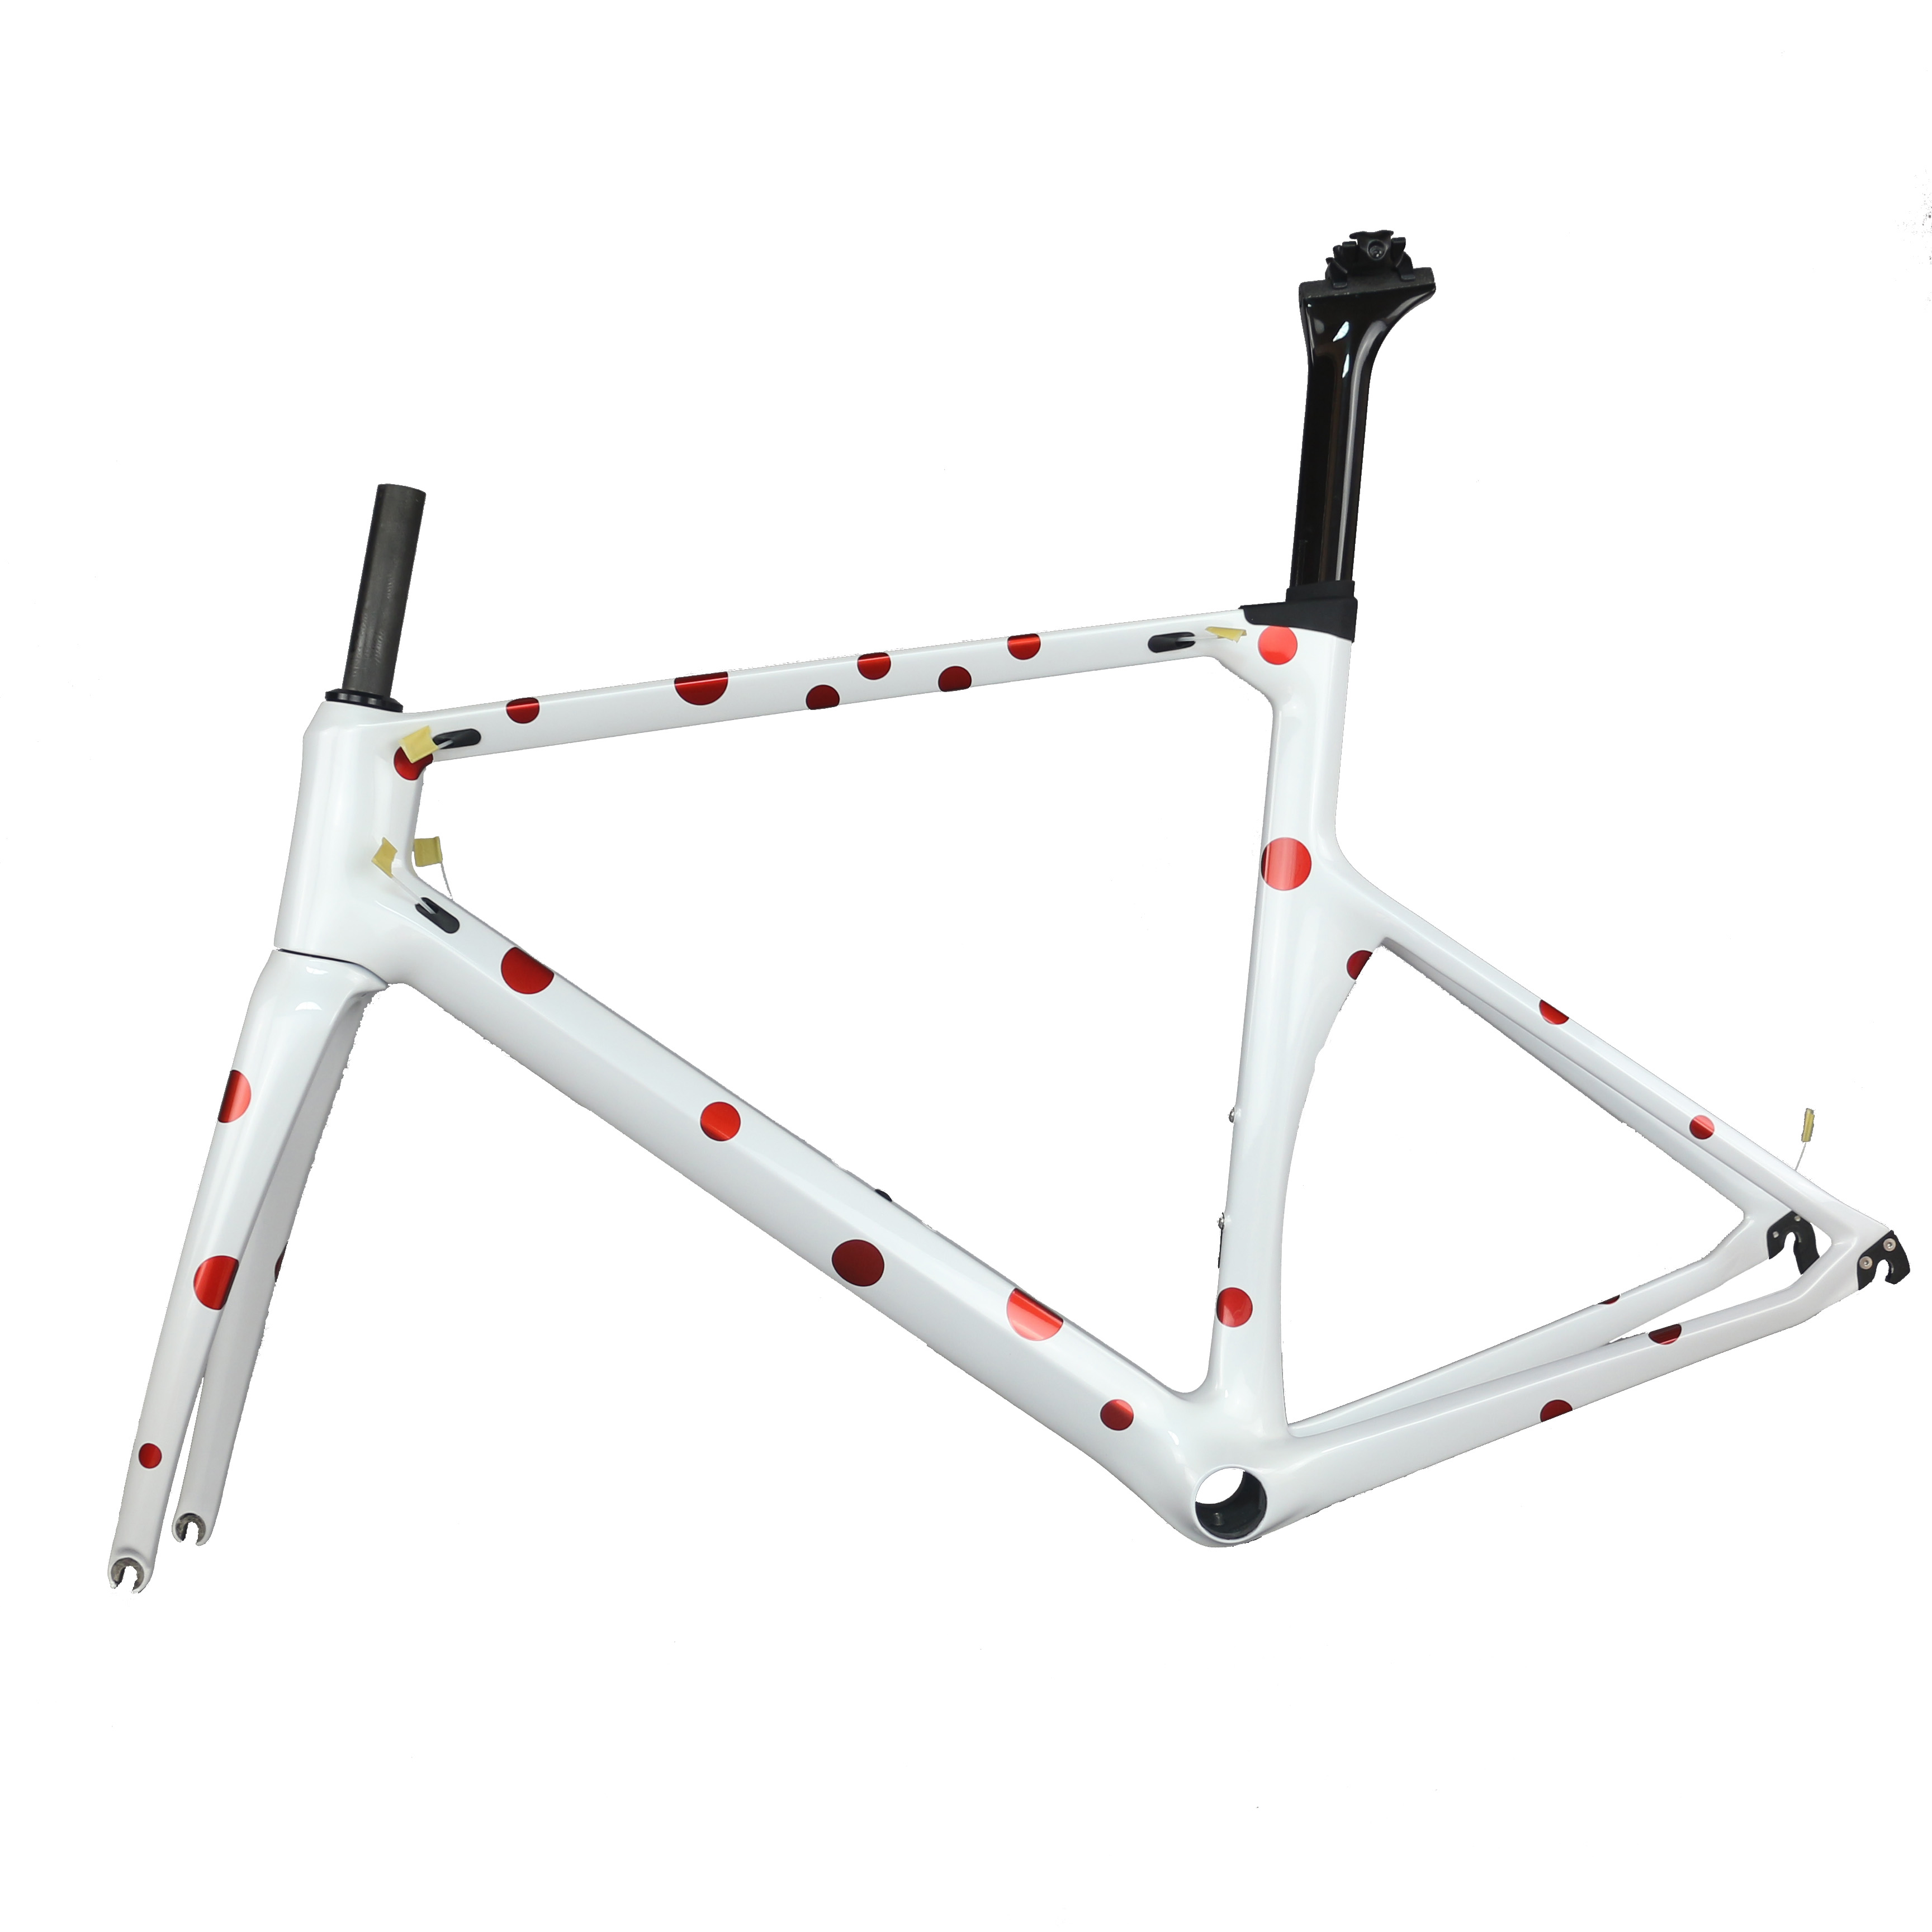 2019 New China Oem Design White Dot Carbon Road Bike Frame Tt-x1